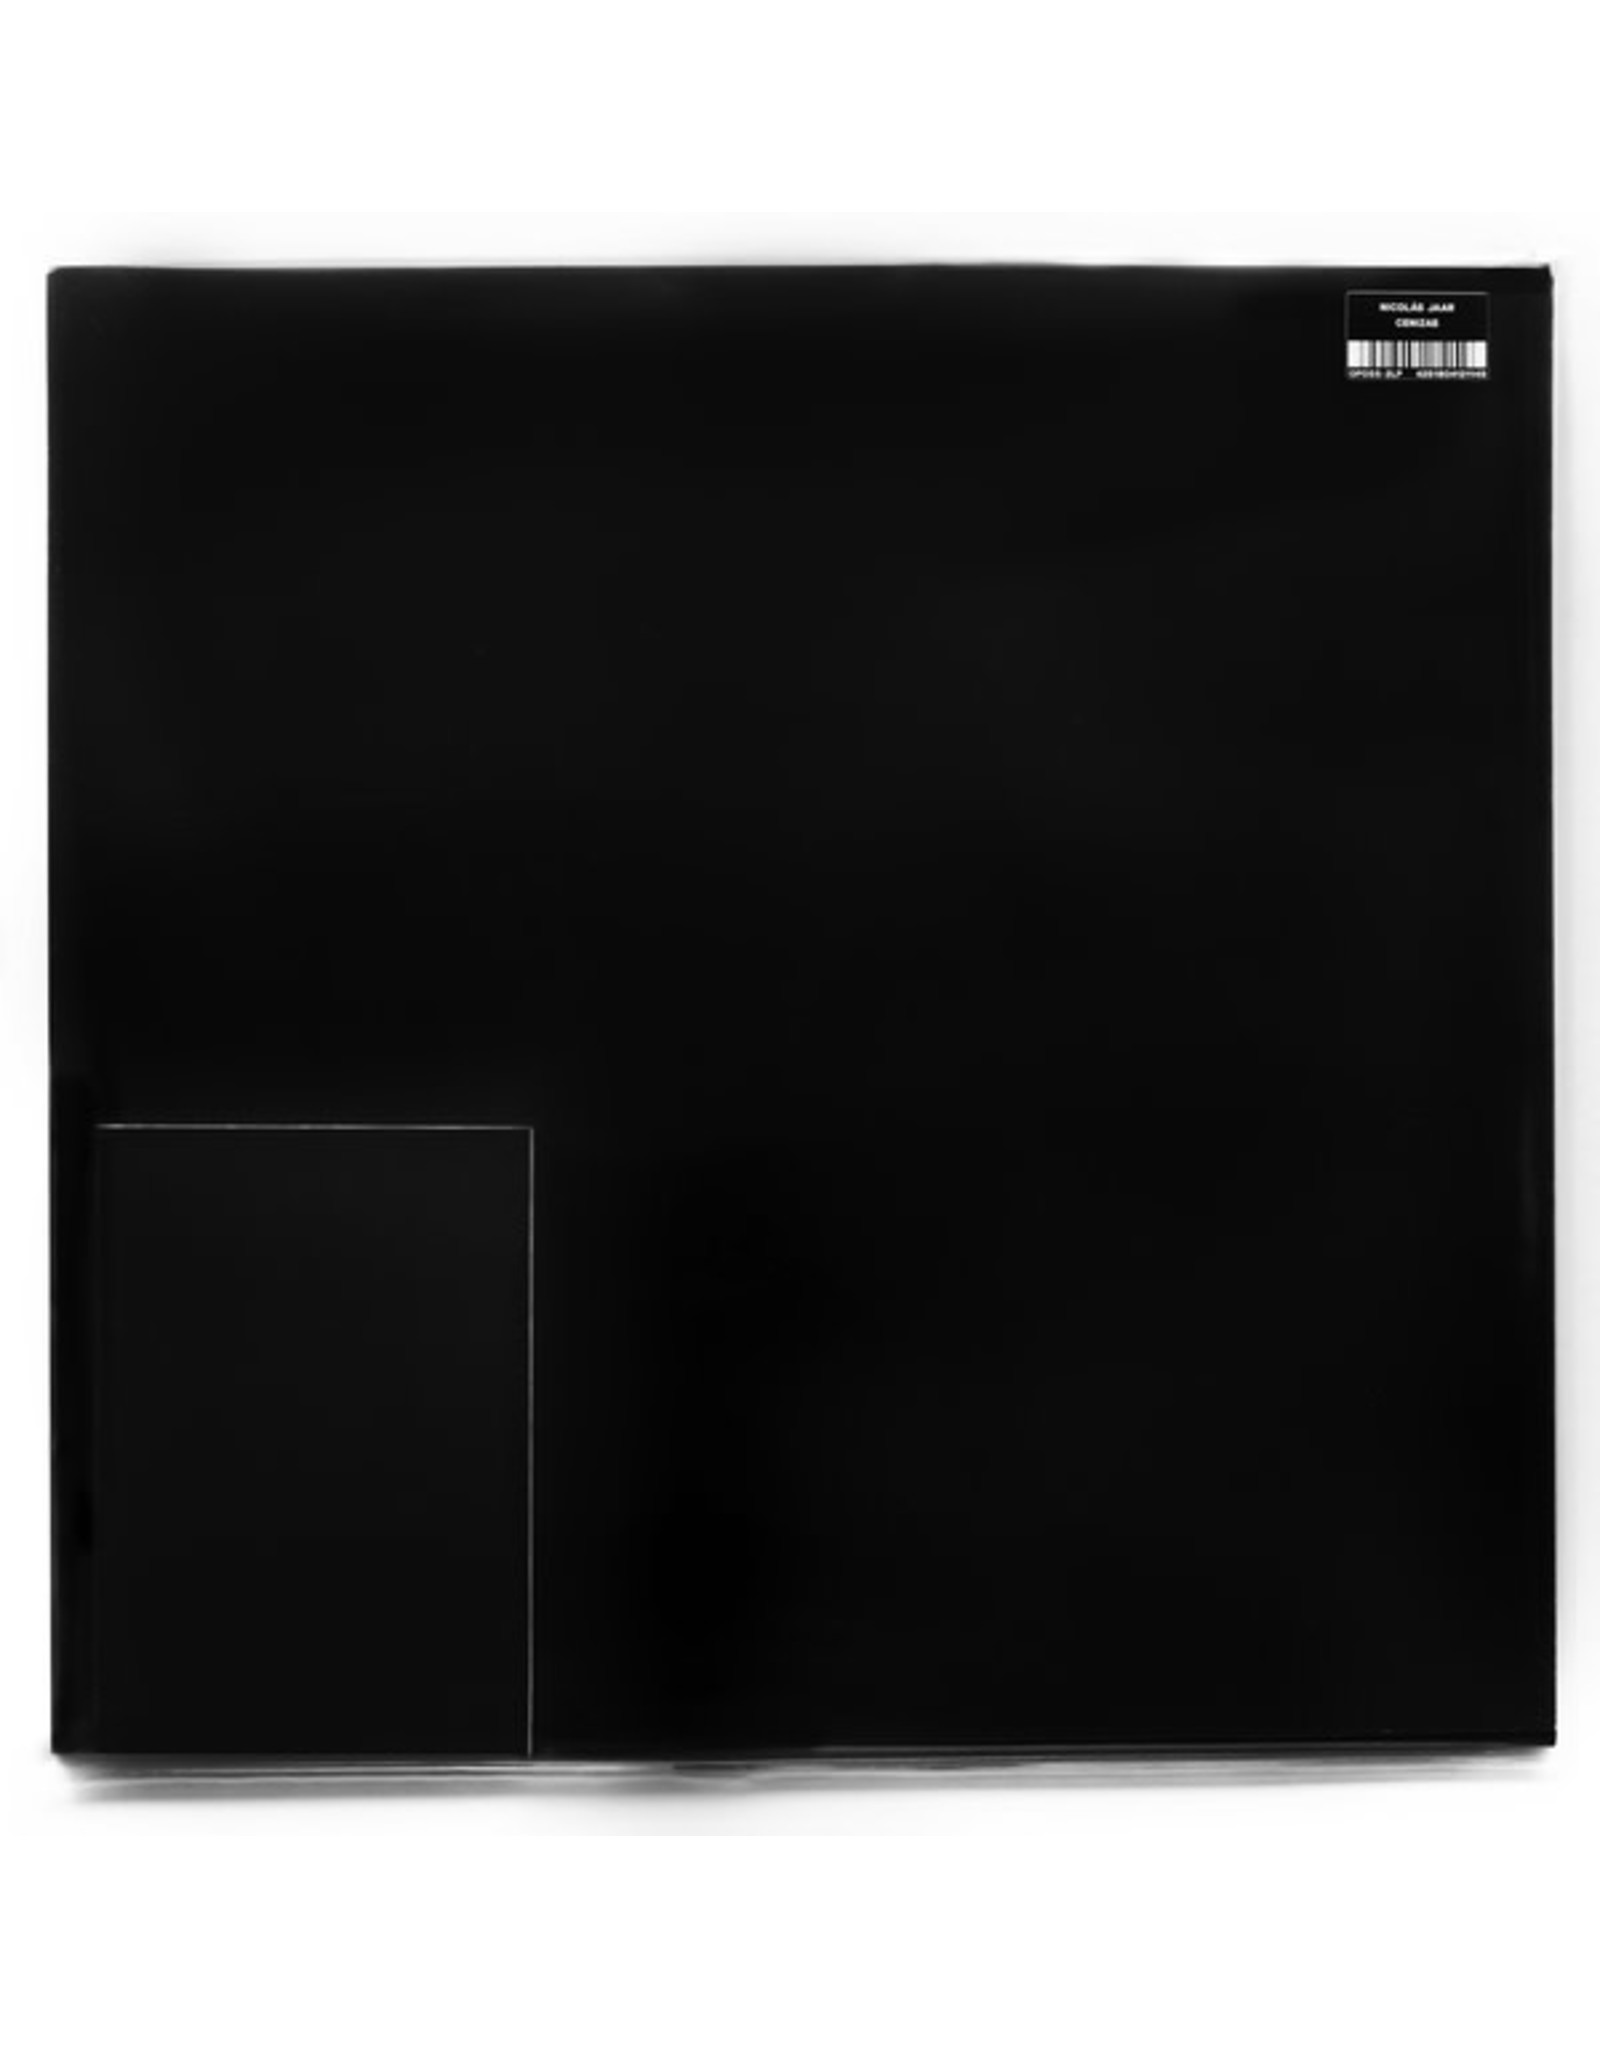 New Vinyl Nicolas Jaar - Cenizas (Sound Edition) 2LP+Book